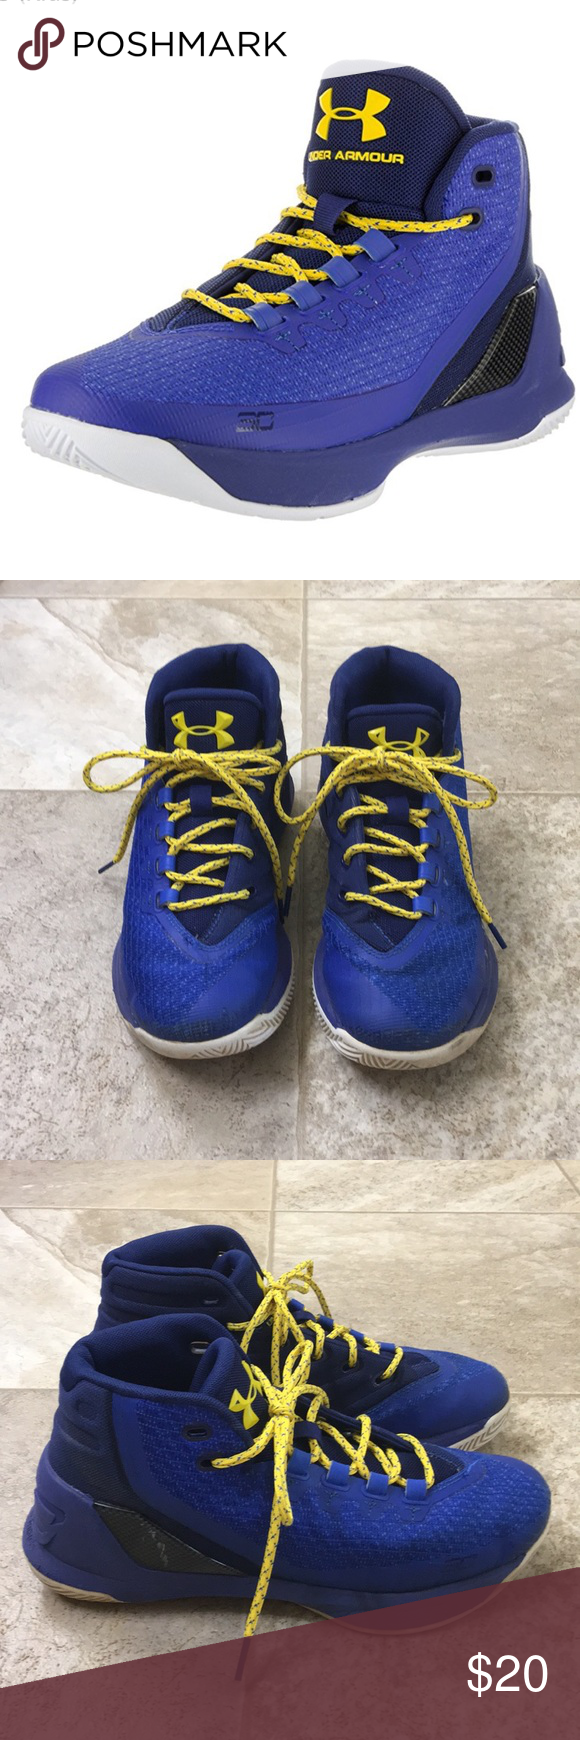 Under Armour Curry 3 Basketball Shoes 7396b41d2779